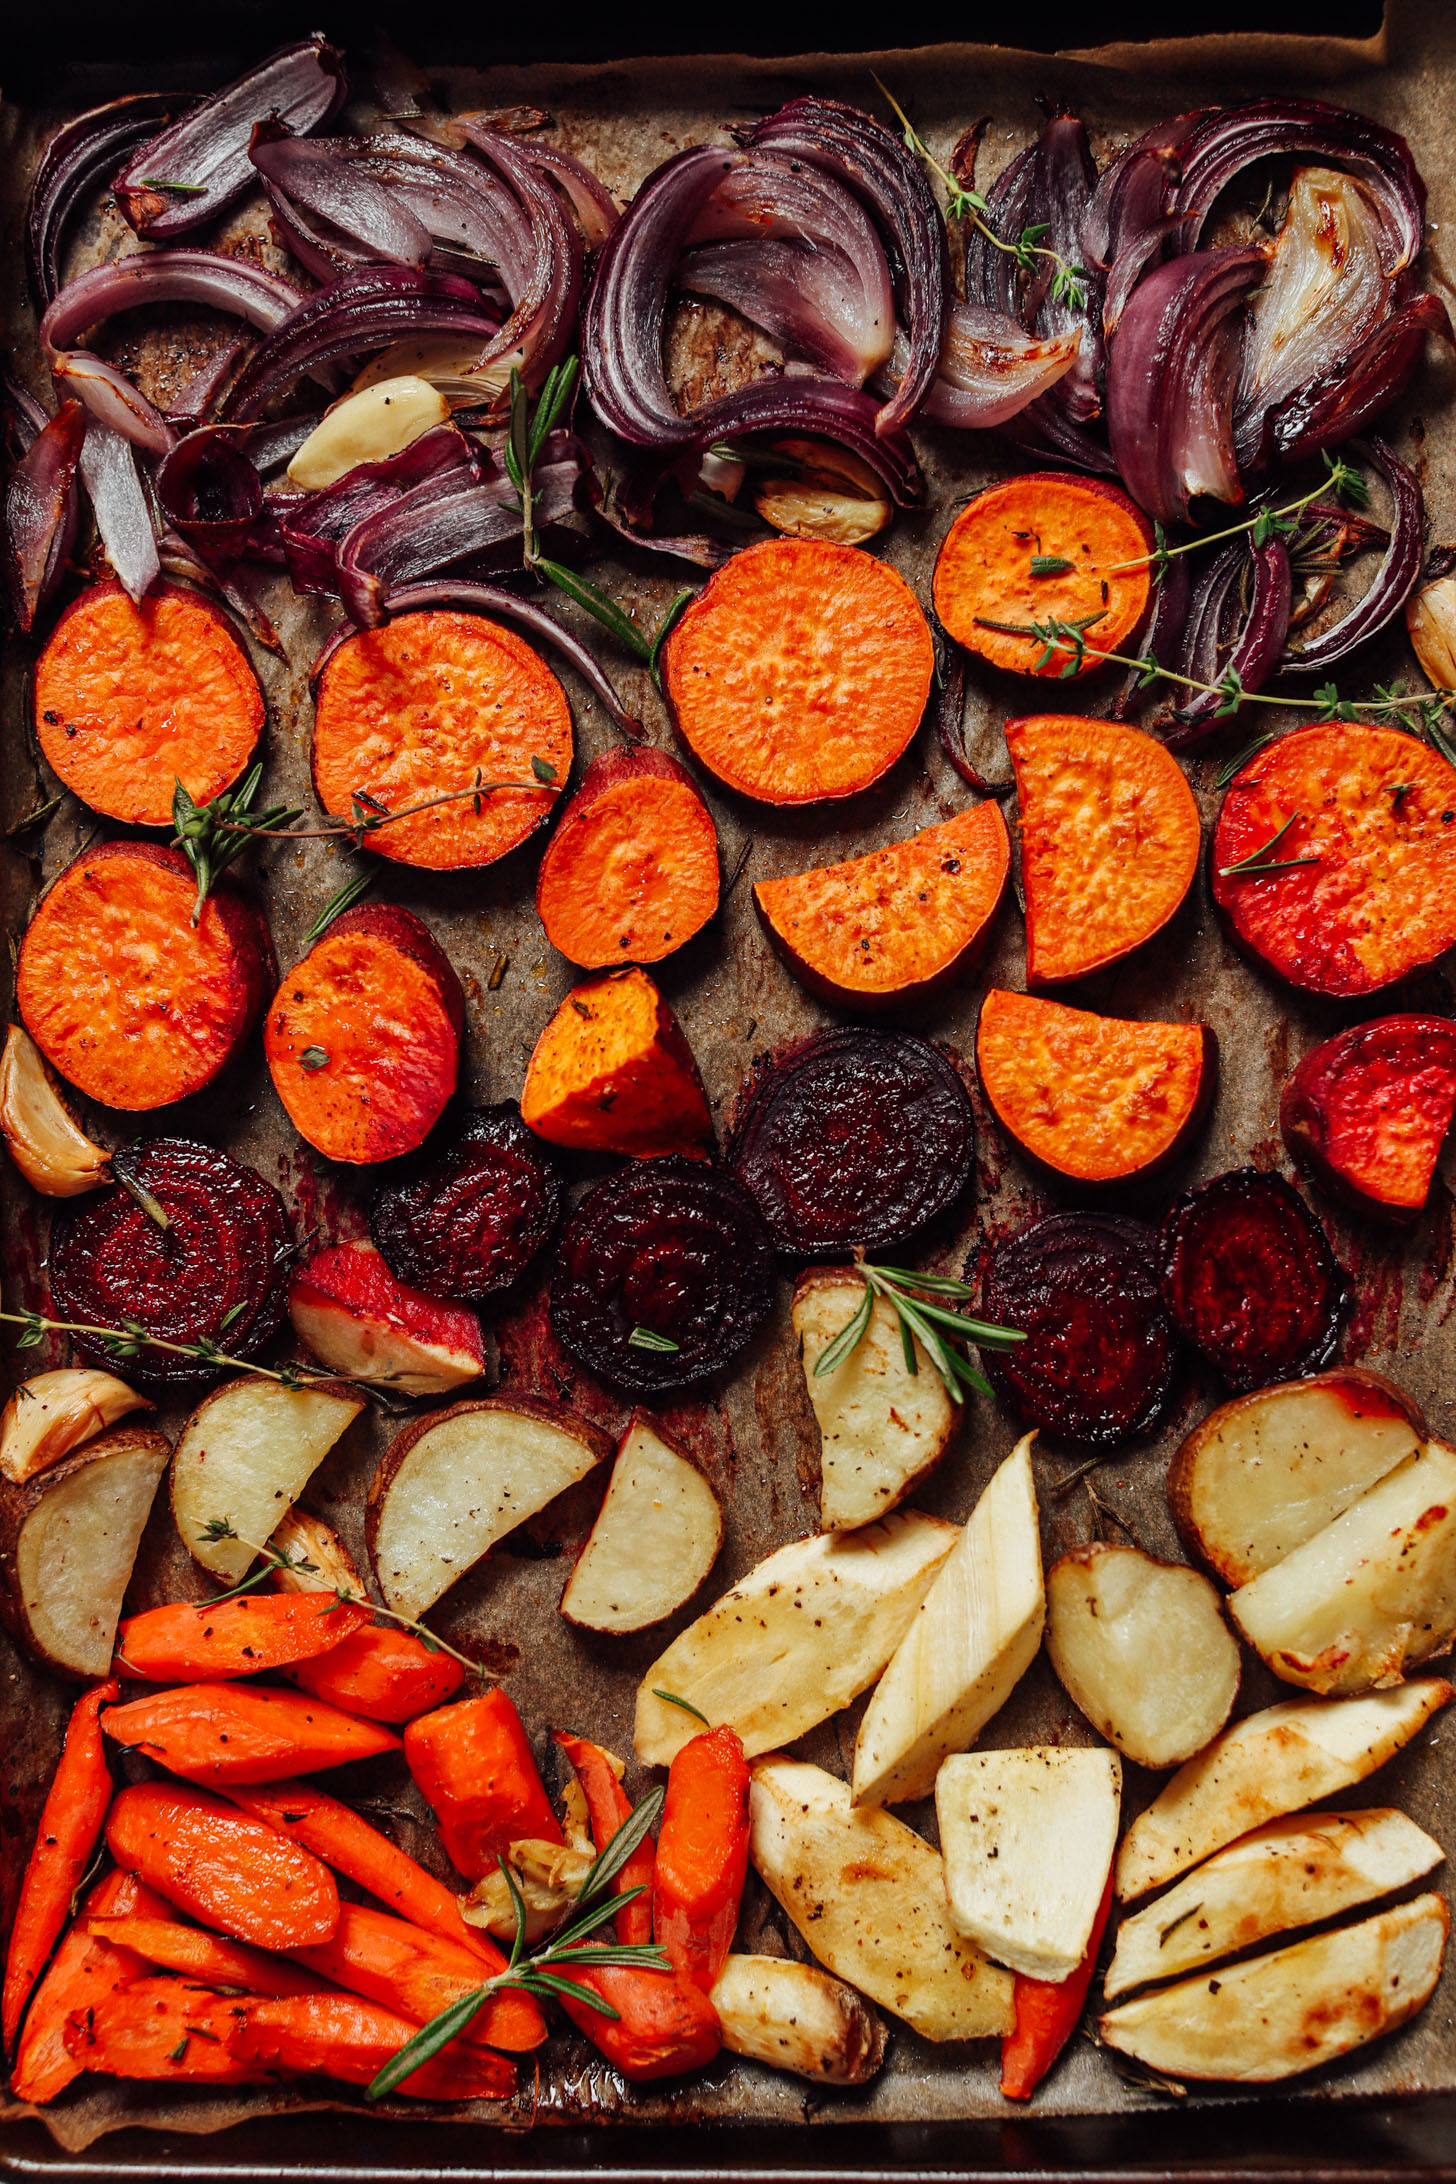 Baking sheet filled with freshly roasted vegetables and herbs for a simple vegan side dish